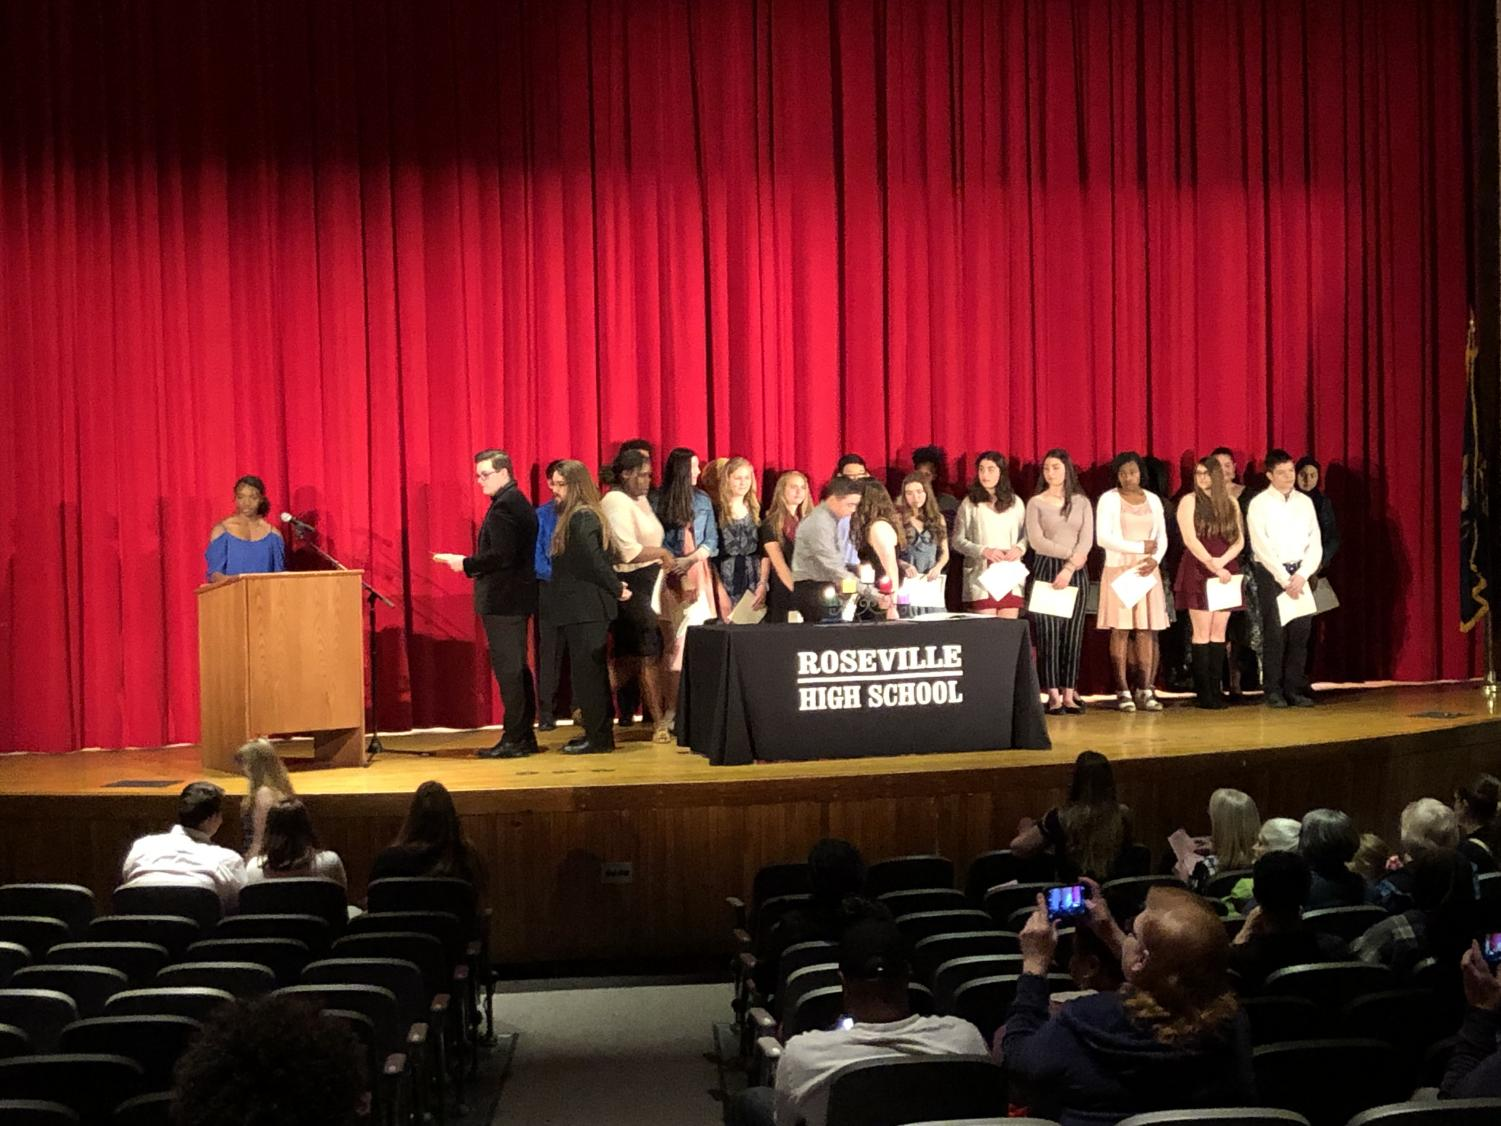 The 35 new members of NHS are now inducted.